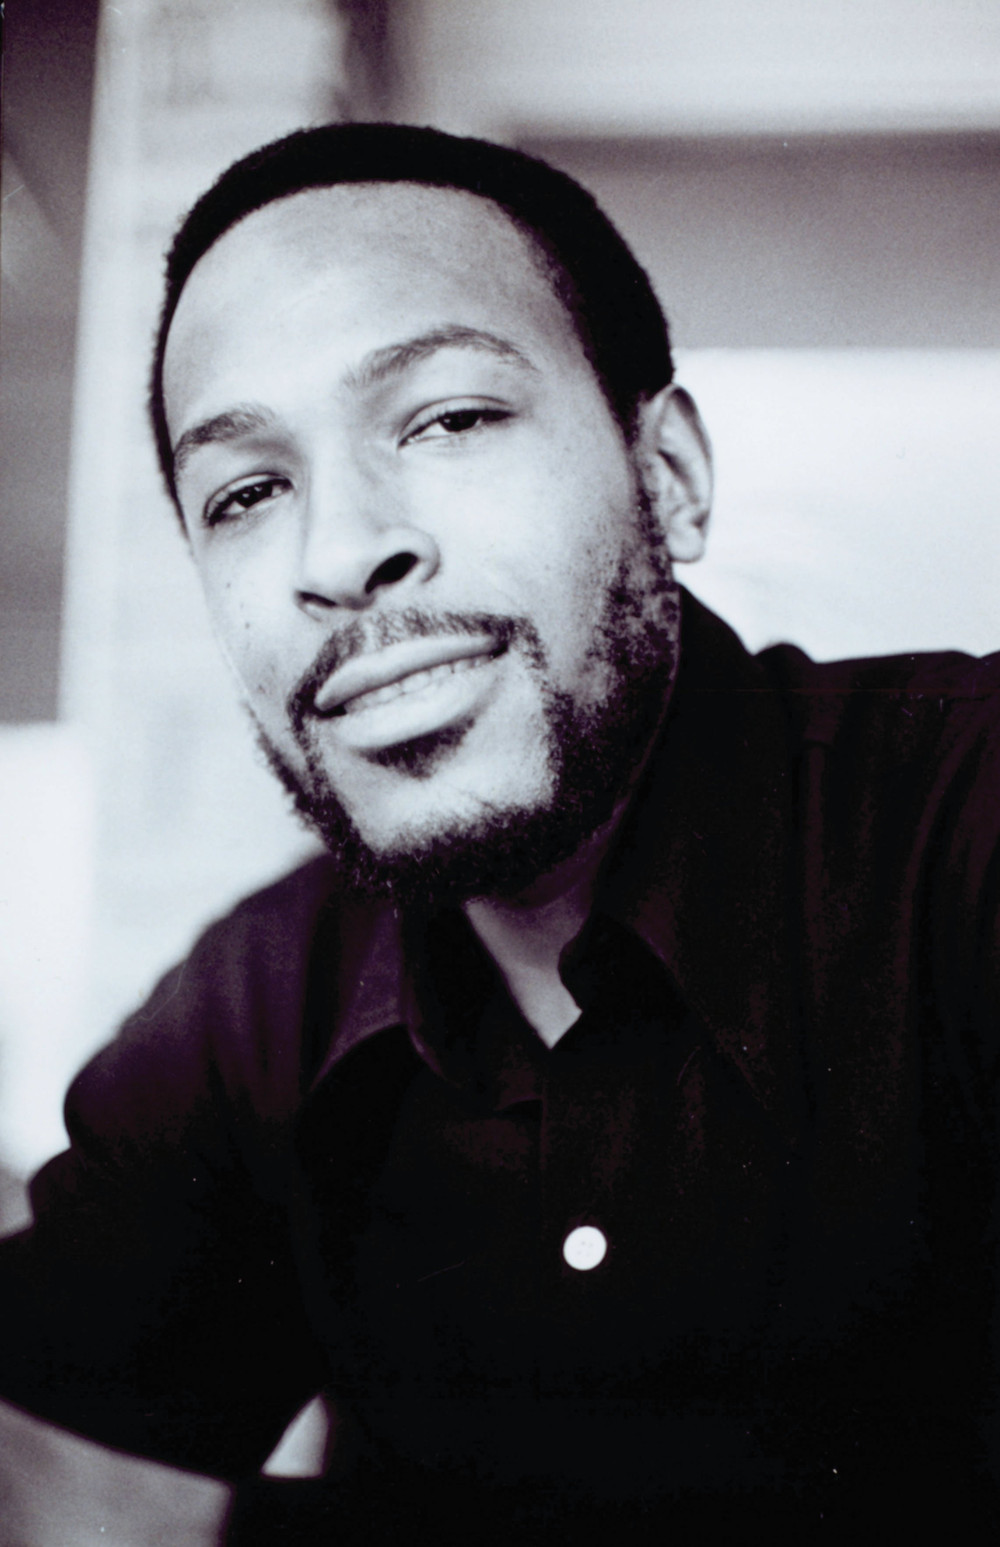 Marvin gaye date of birth